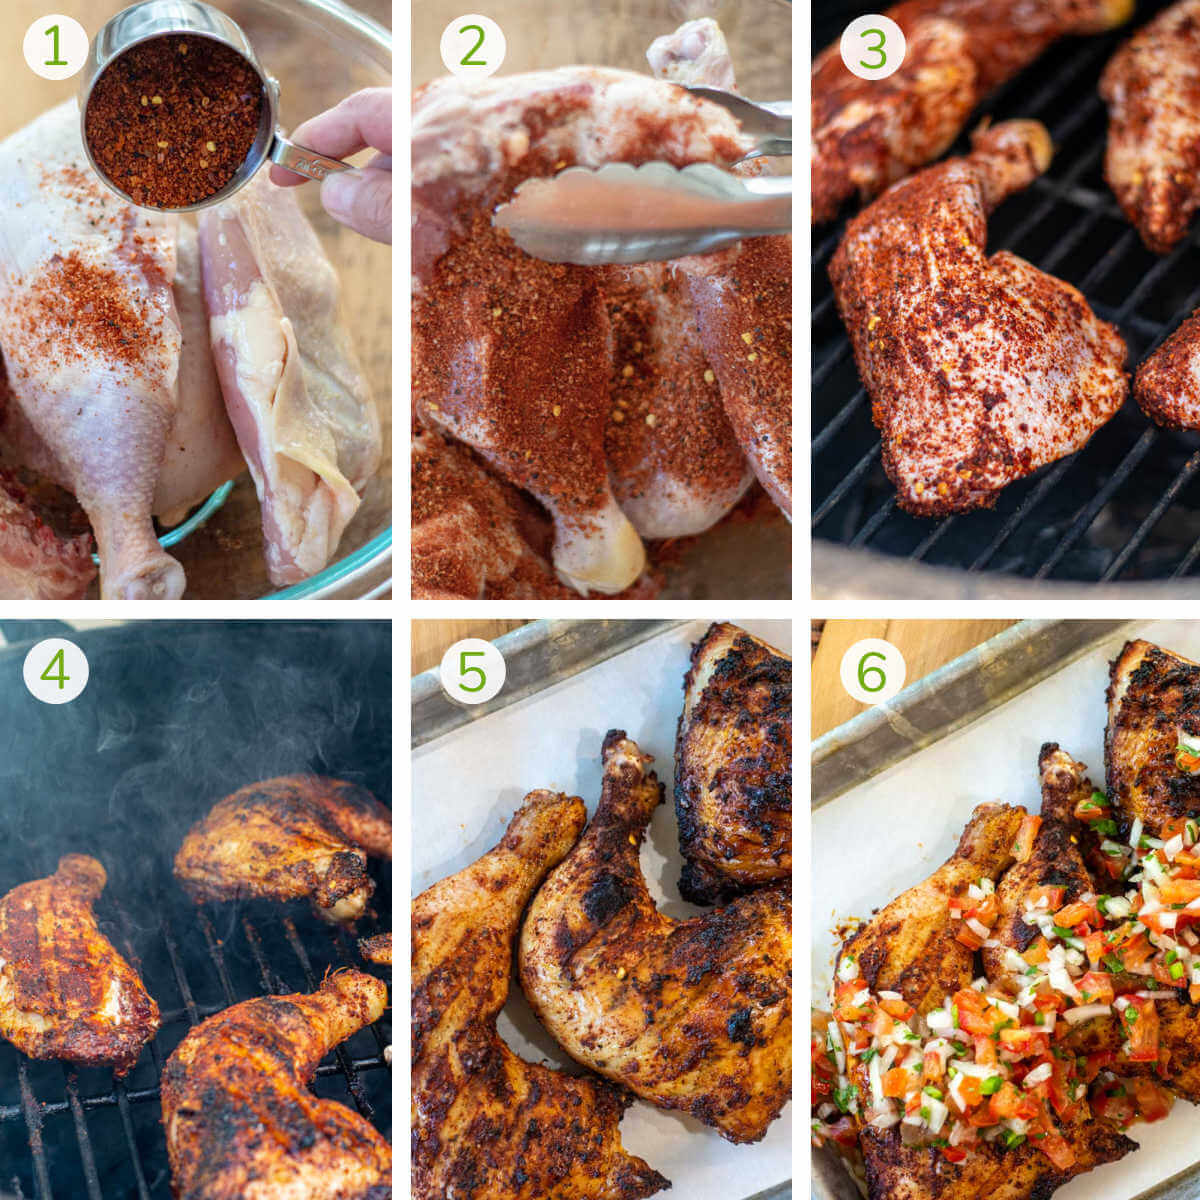 process photos showing rubbing the chicken with a dry rub, grilling and then topping with fresh pico.